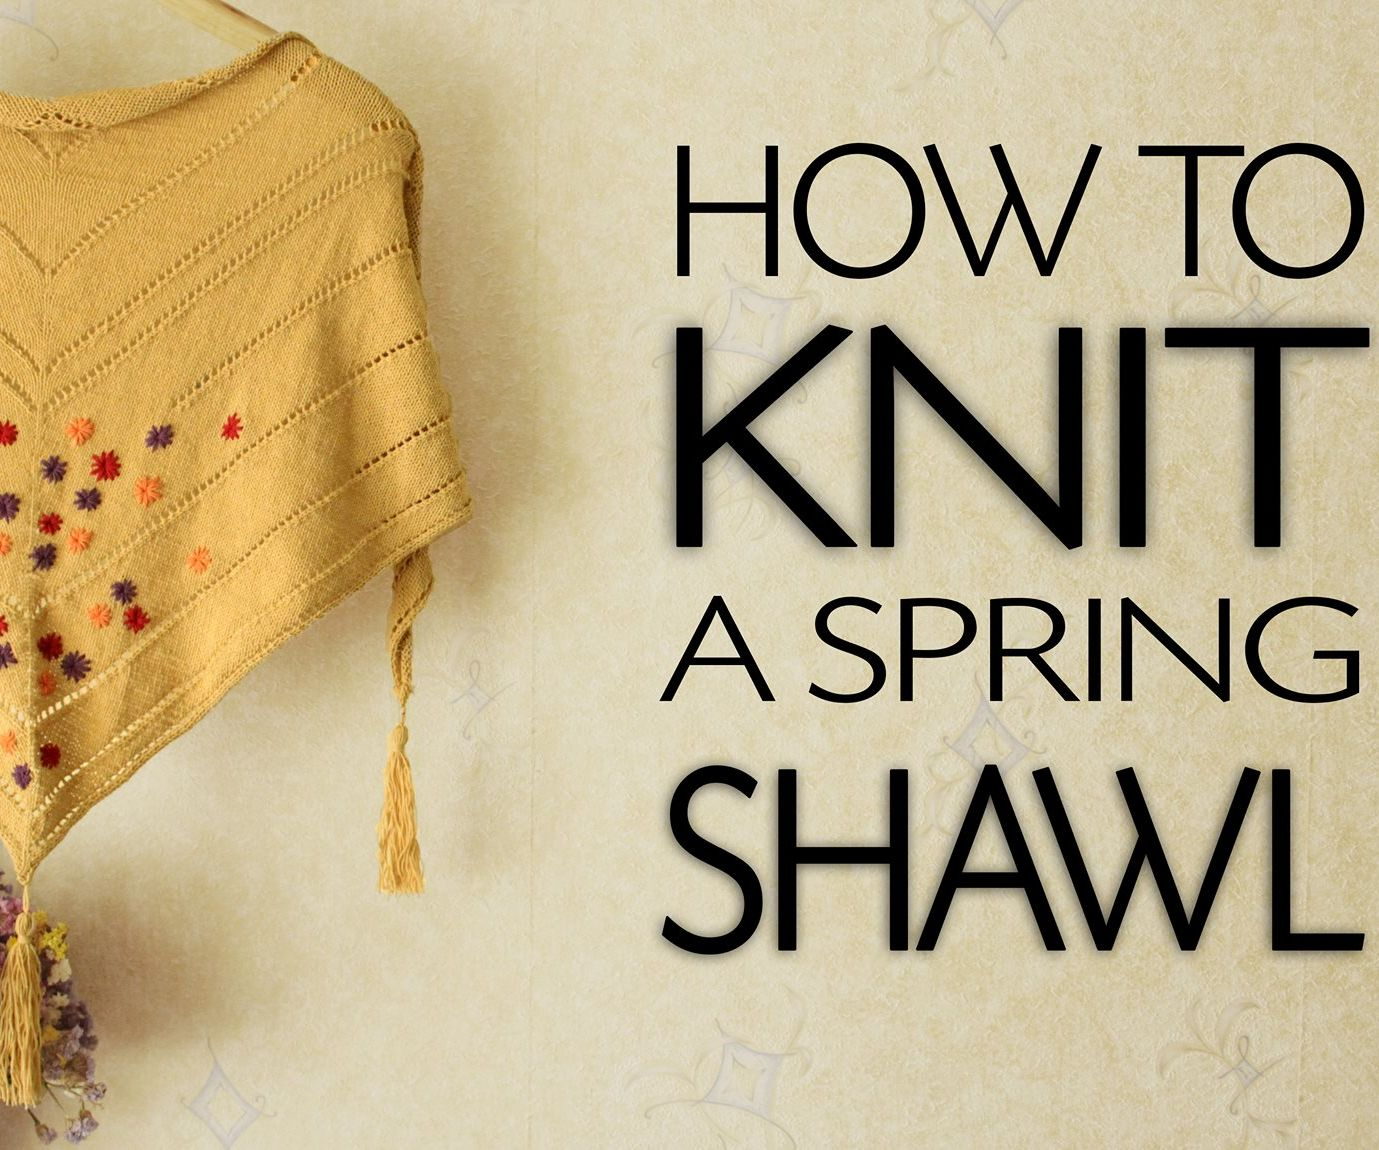 How To Knit a Triangle Shawl